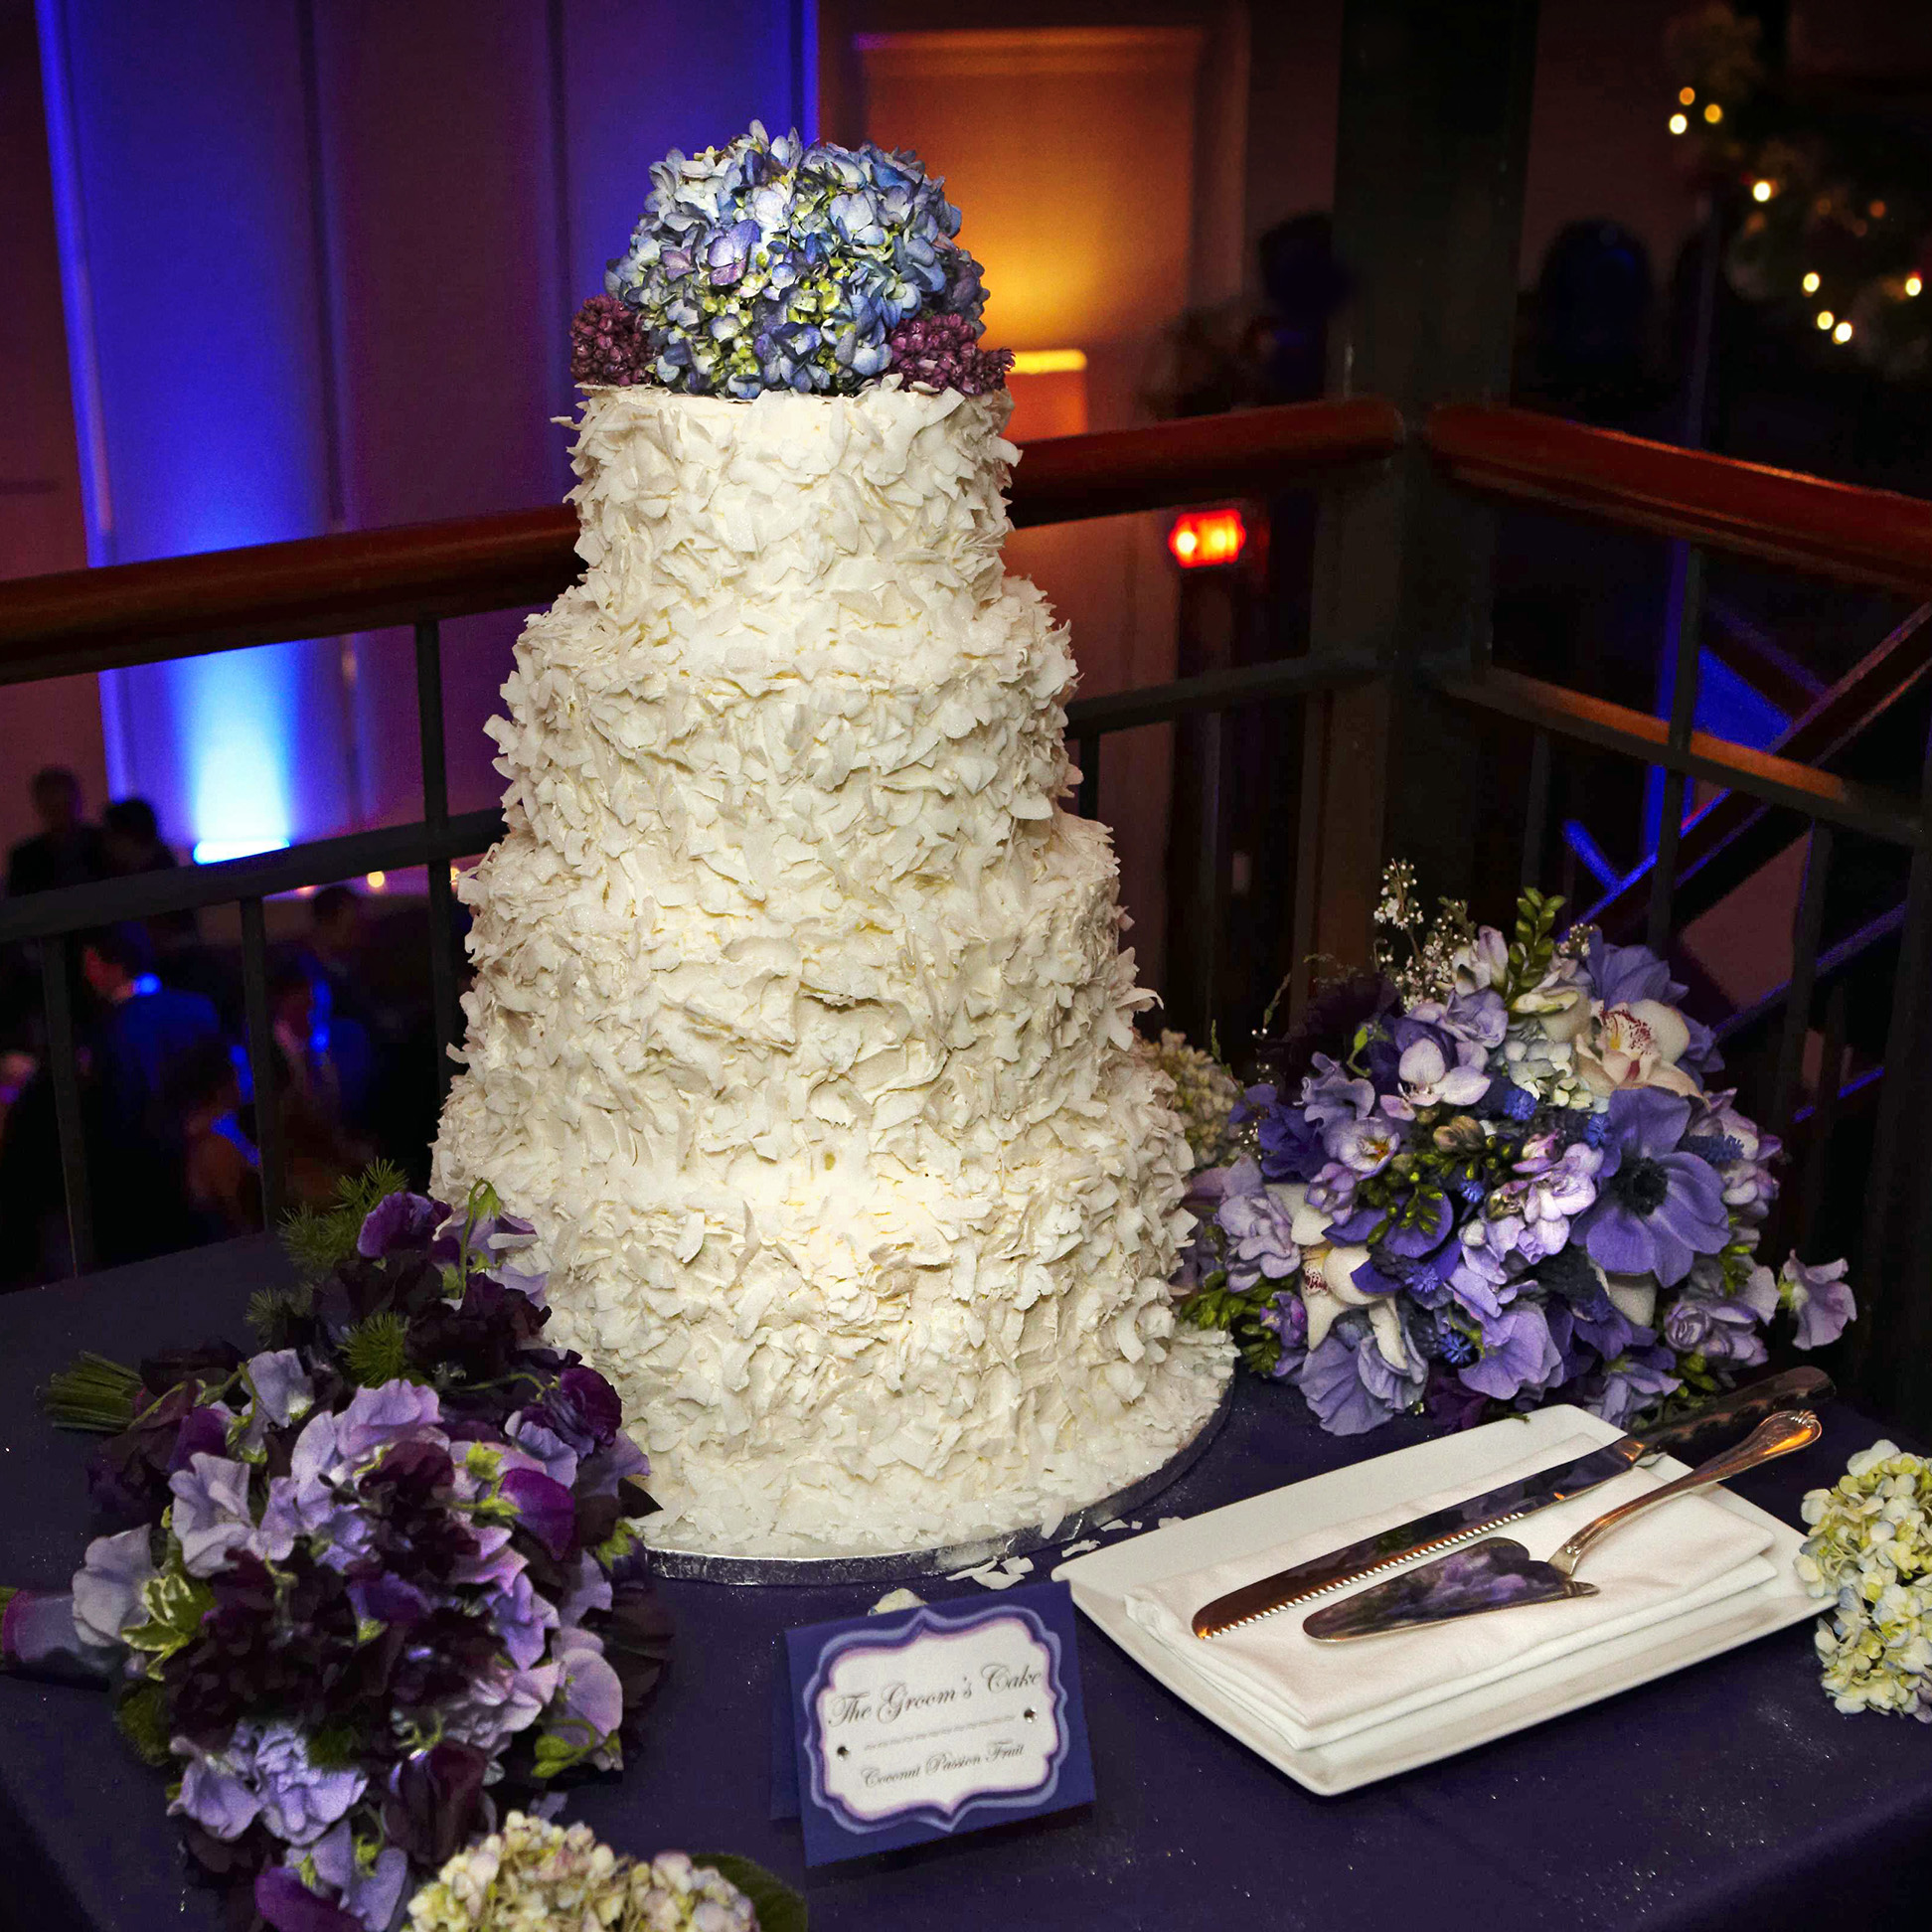 Interior Decor And More weddings events catering flowers cakes decor and more palmers more